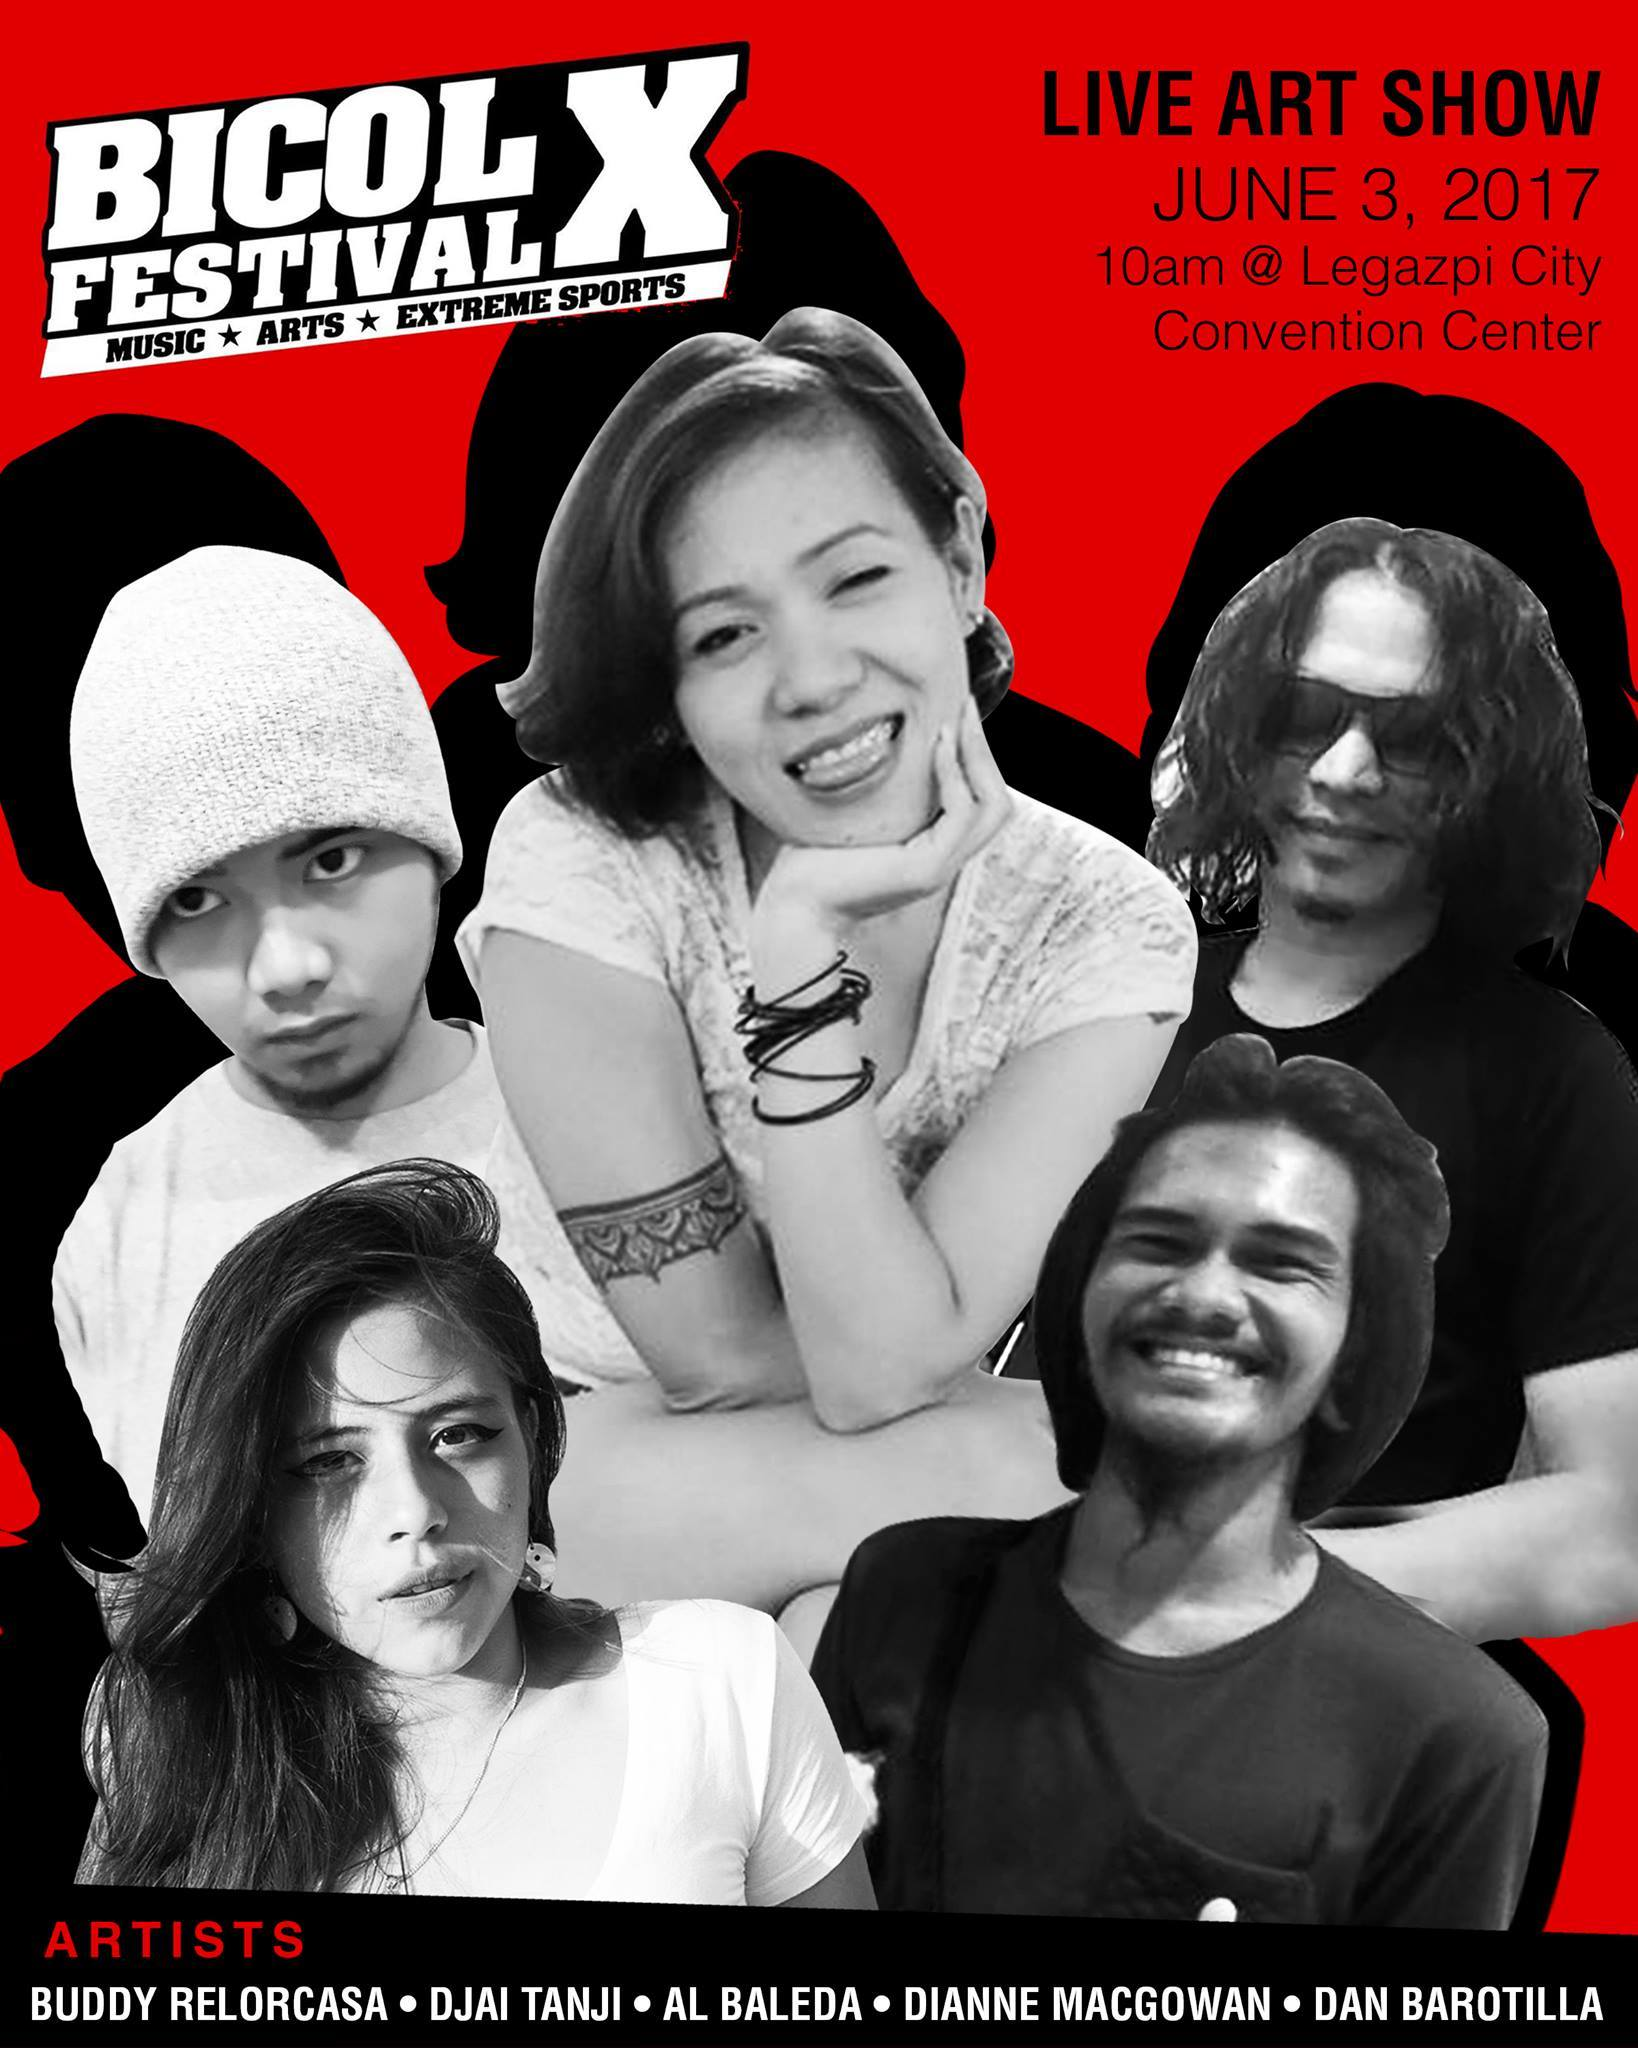 BICOL X Promotions‎BICOL X Festival : The Final Show Page Liked · Yesterday · BICOL X Festival LIVE ARTSHOW featuring Buddy Relorcasa, Djai Tanji, Al Baleda, Dianne Macgowan and Dan Barotilla! See you on Saturday for #BICOLXFestival at Legazpi City Convention Center! For tickets, contact 0927 603 6651 / 0999 405 8974.